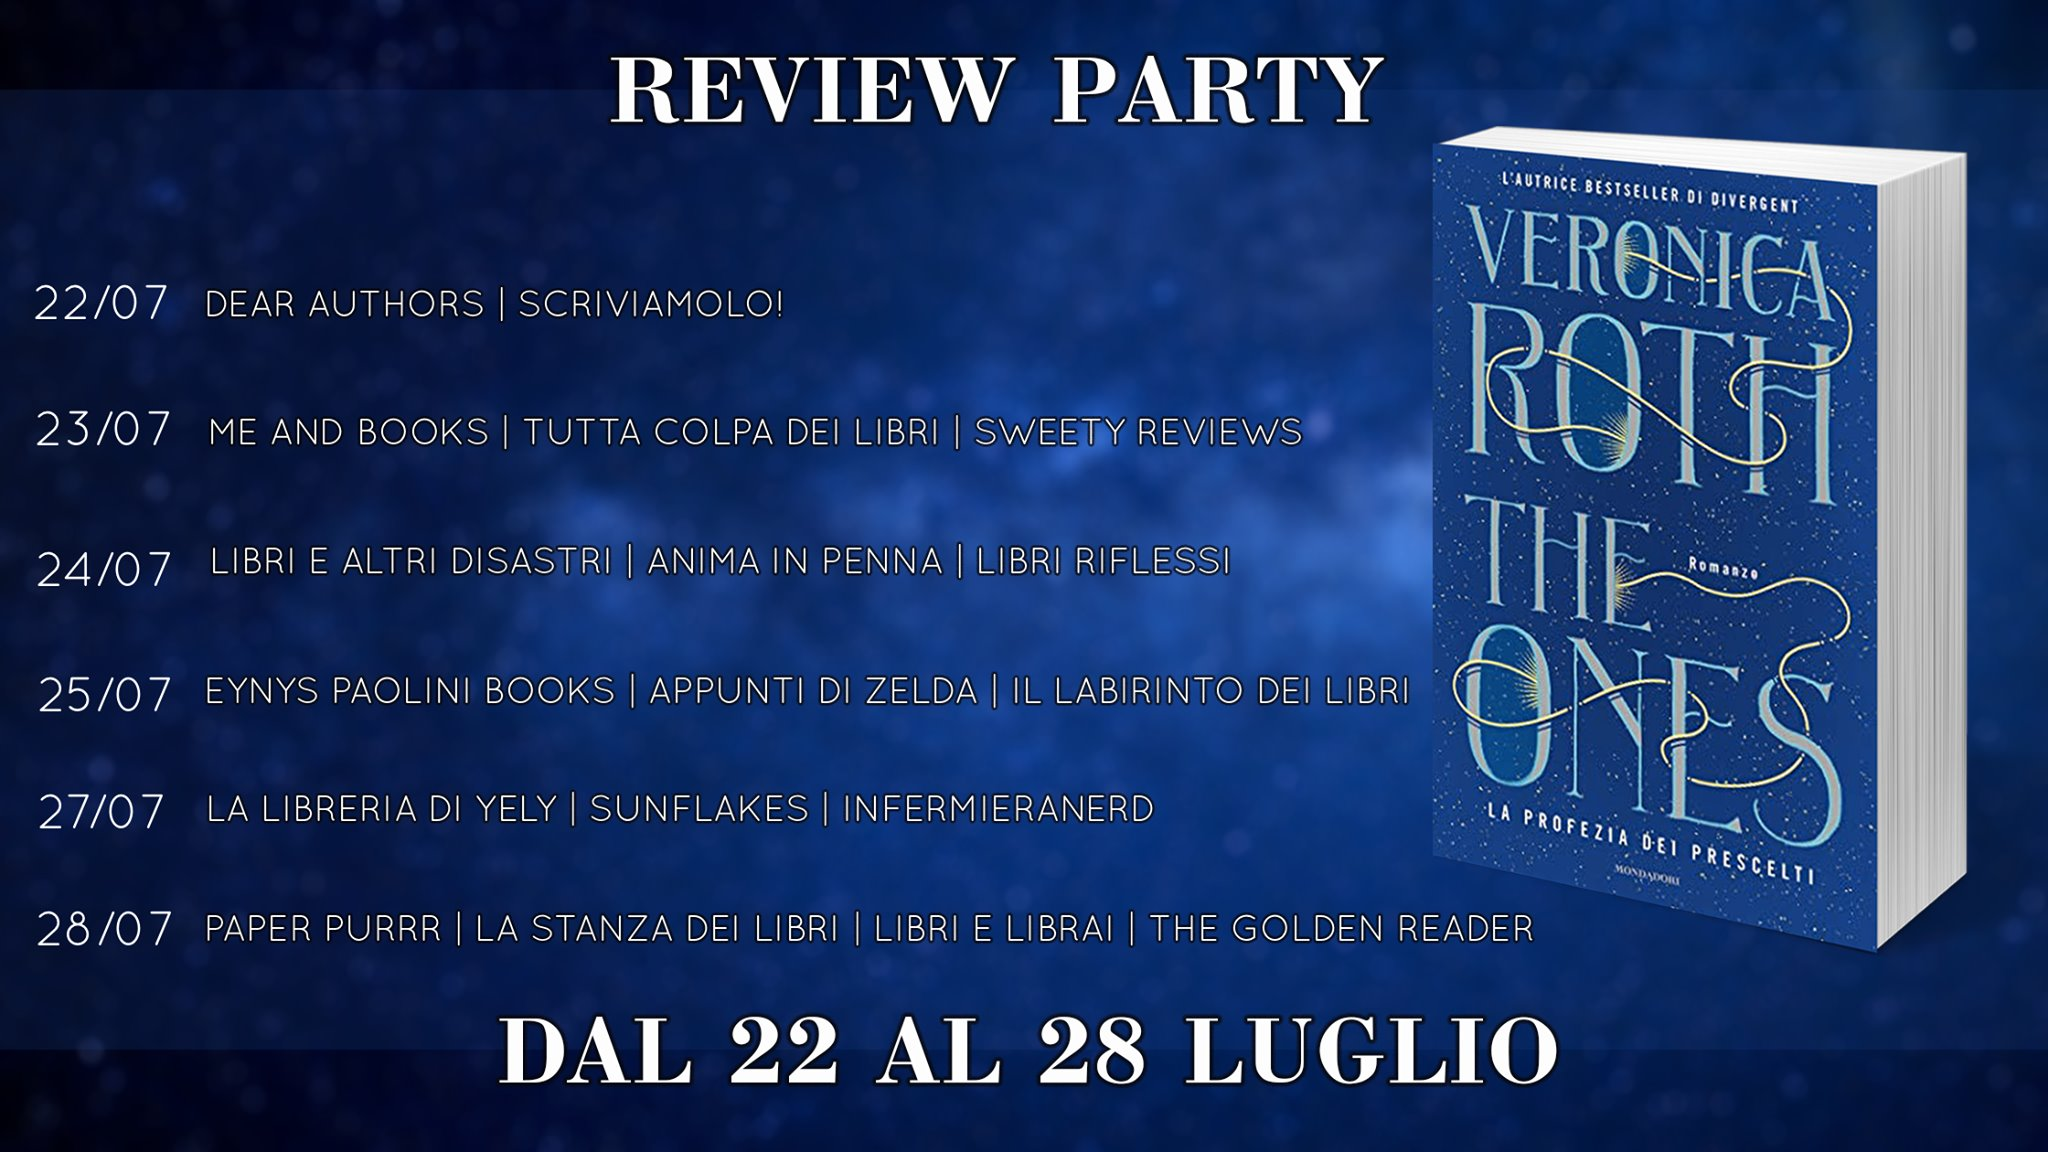 Review Party - The ones: la profezia dei prescelti di Veronica Roth